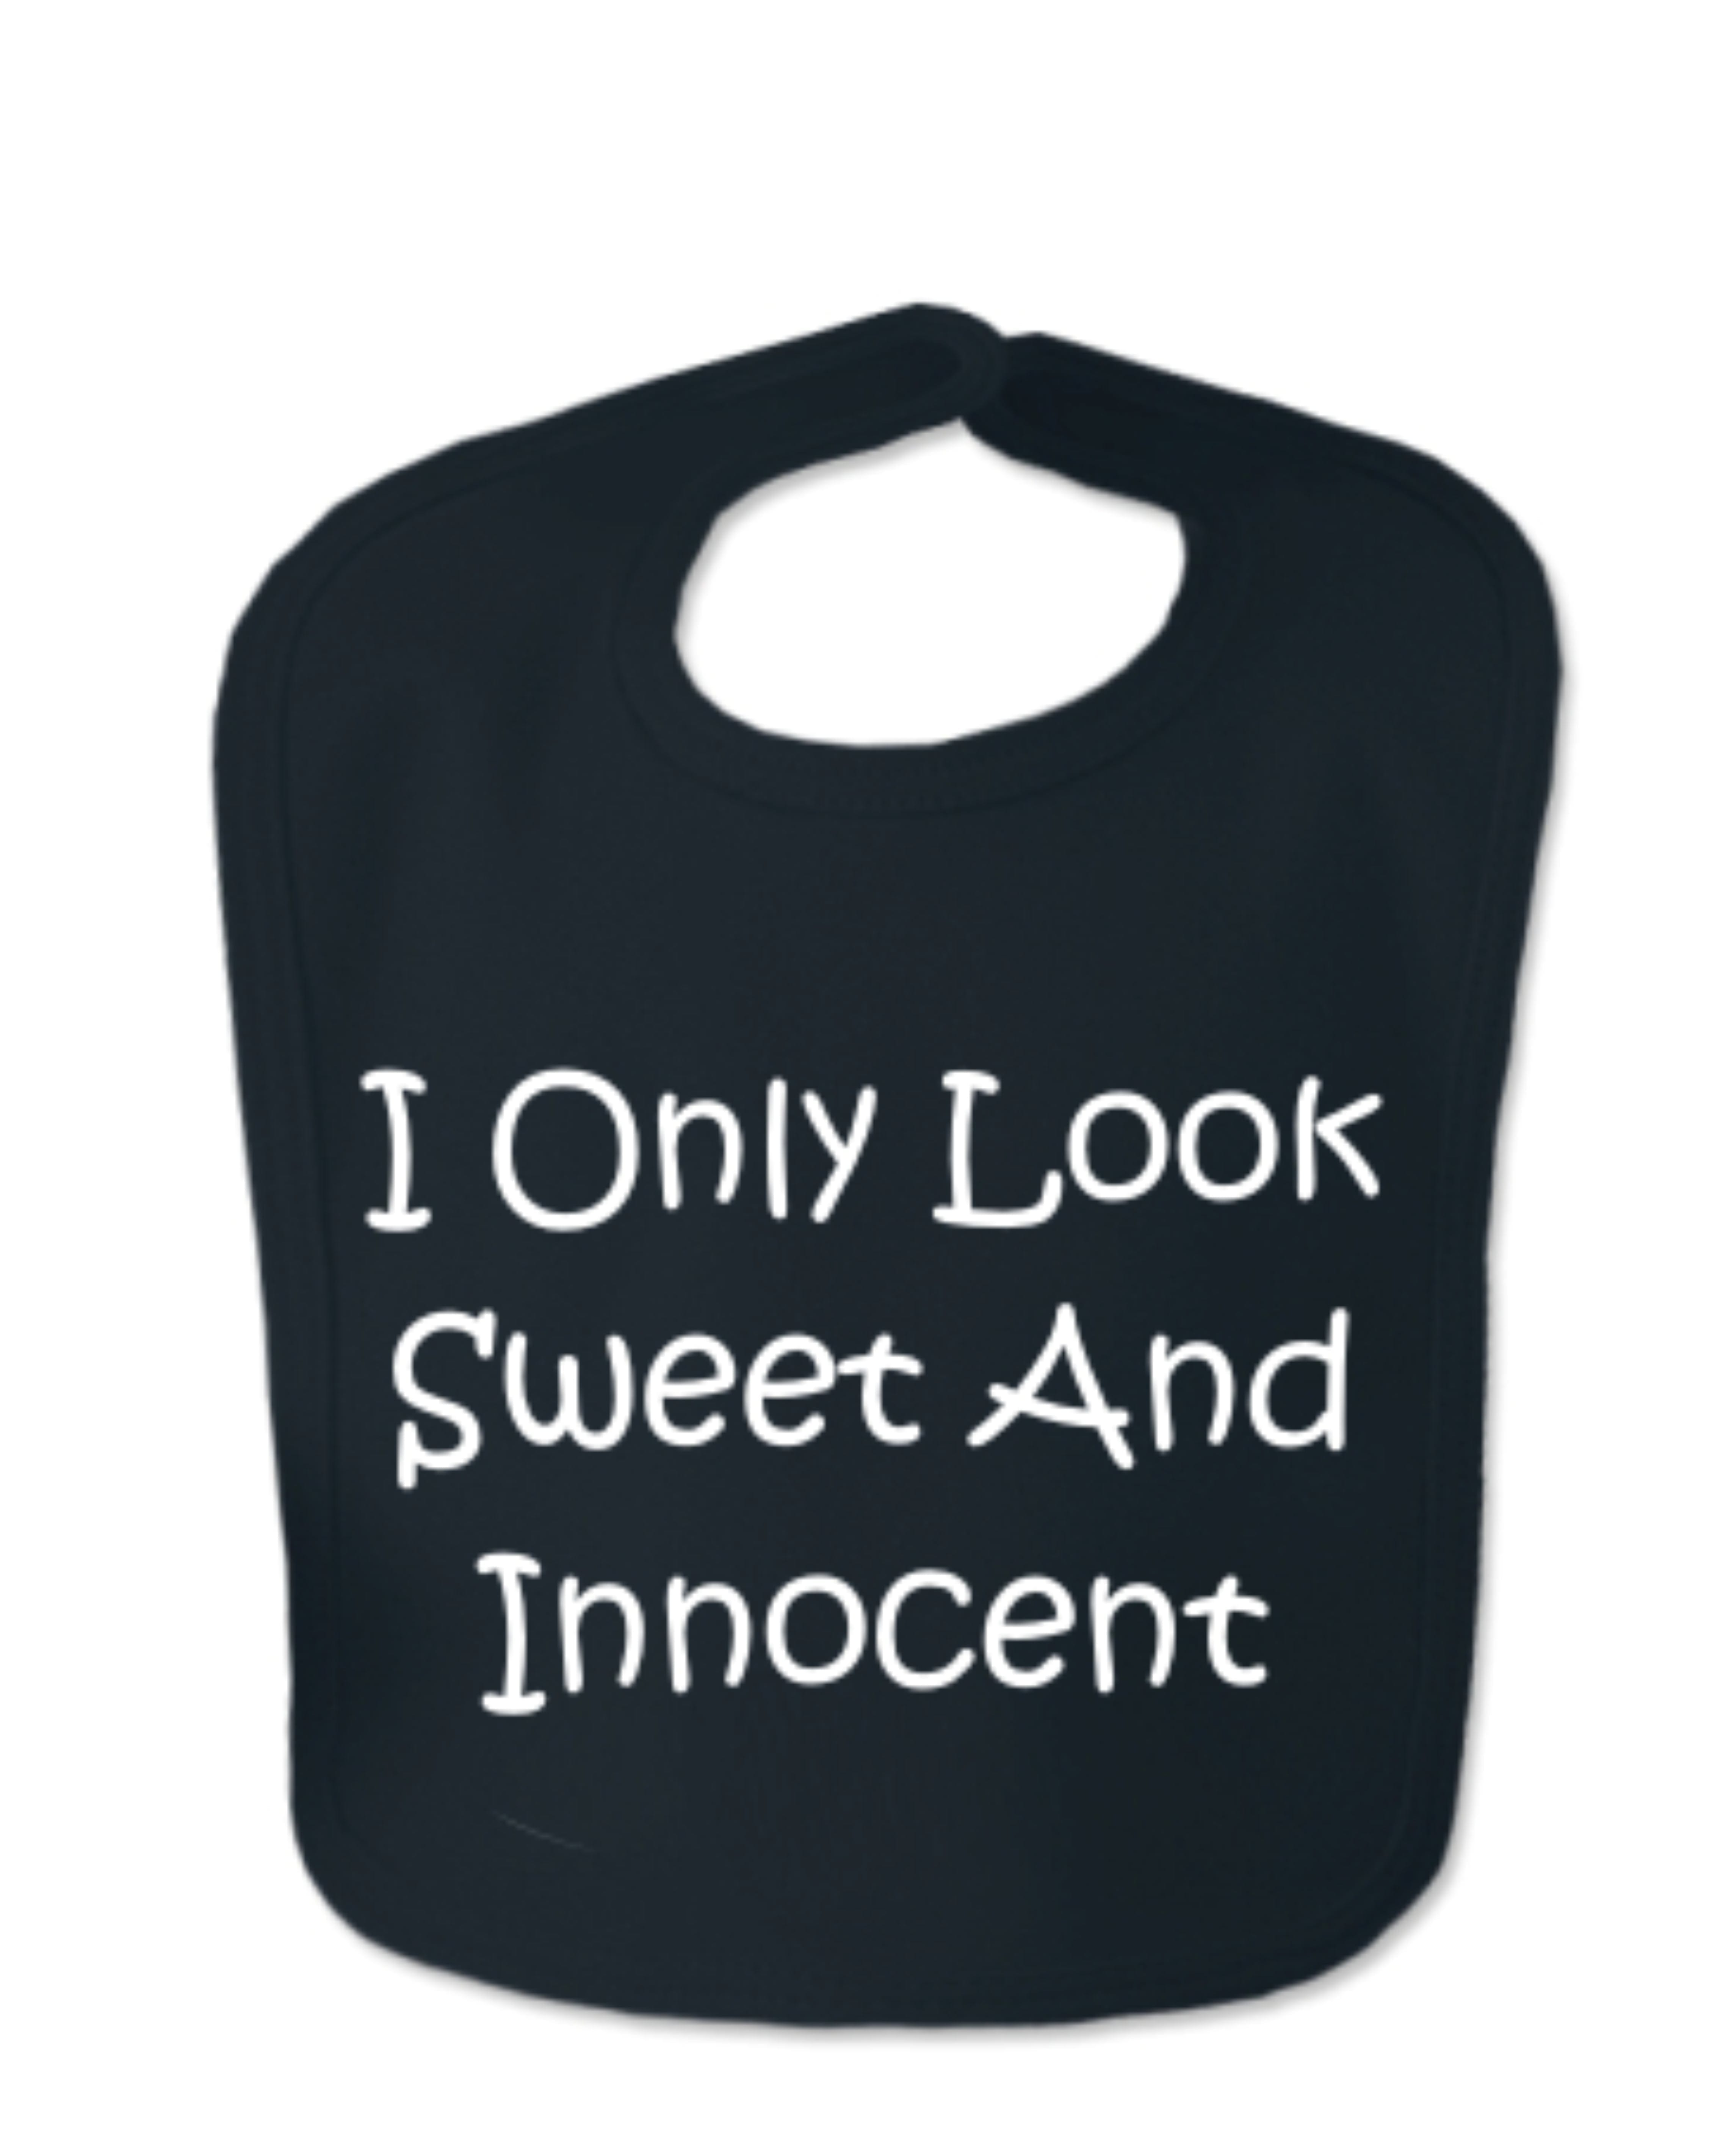 Black I Only Look Sweet And Innocent Velcro Baby Bib